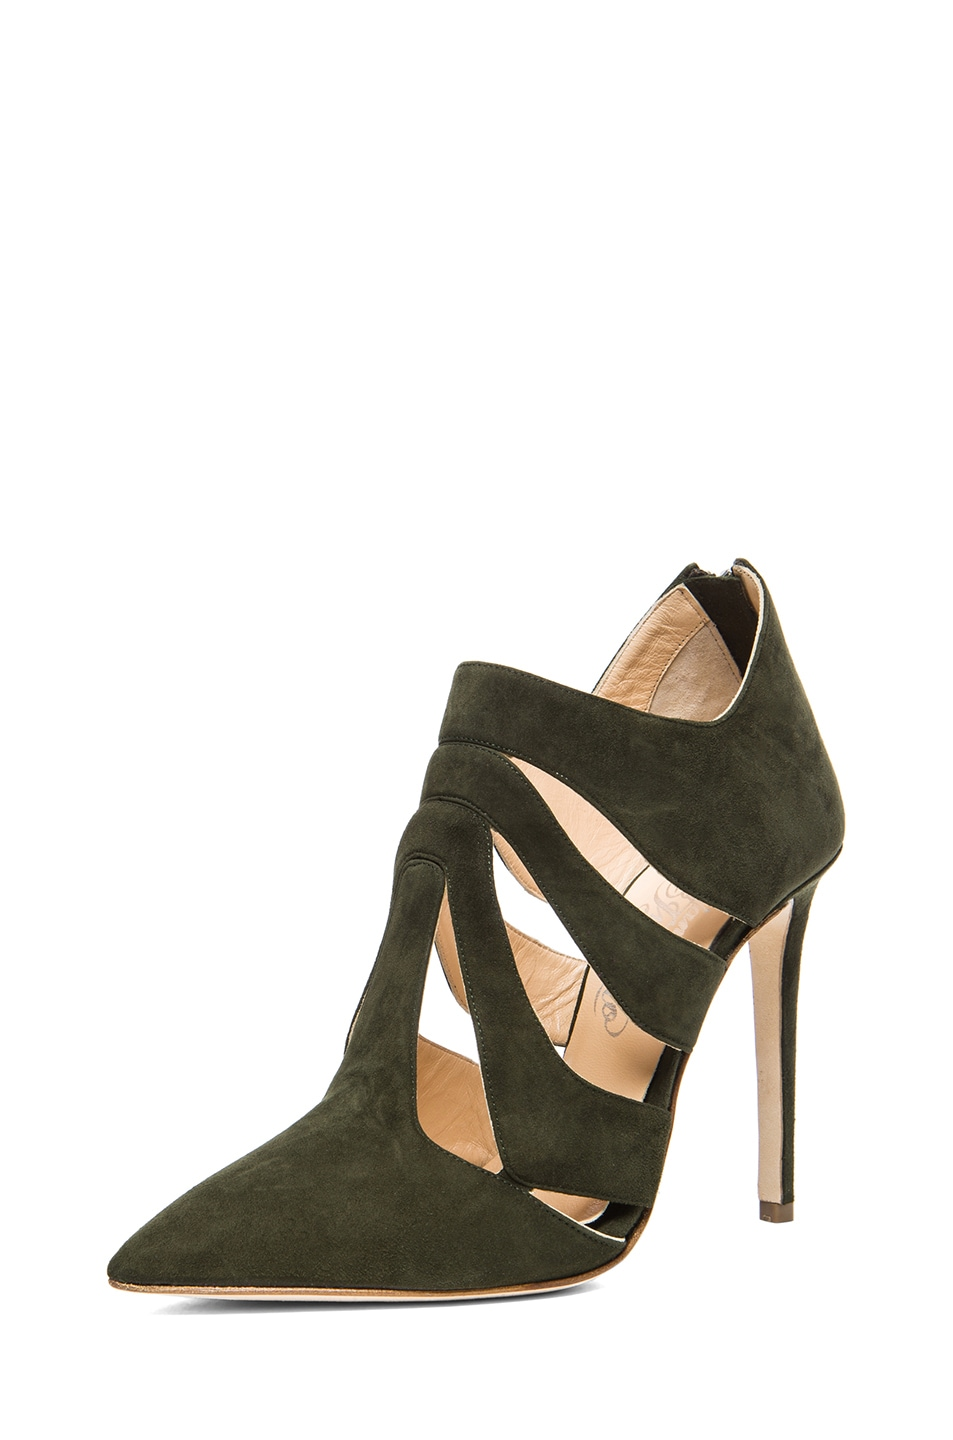 Image 2 of Alejandro Ingelmo Skeleton Suede Booties in Military